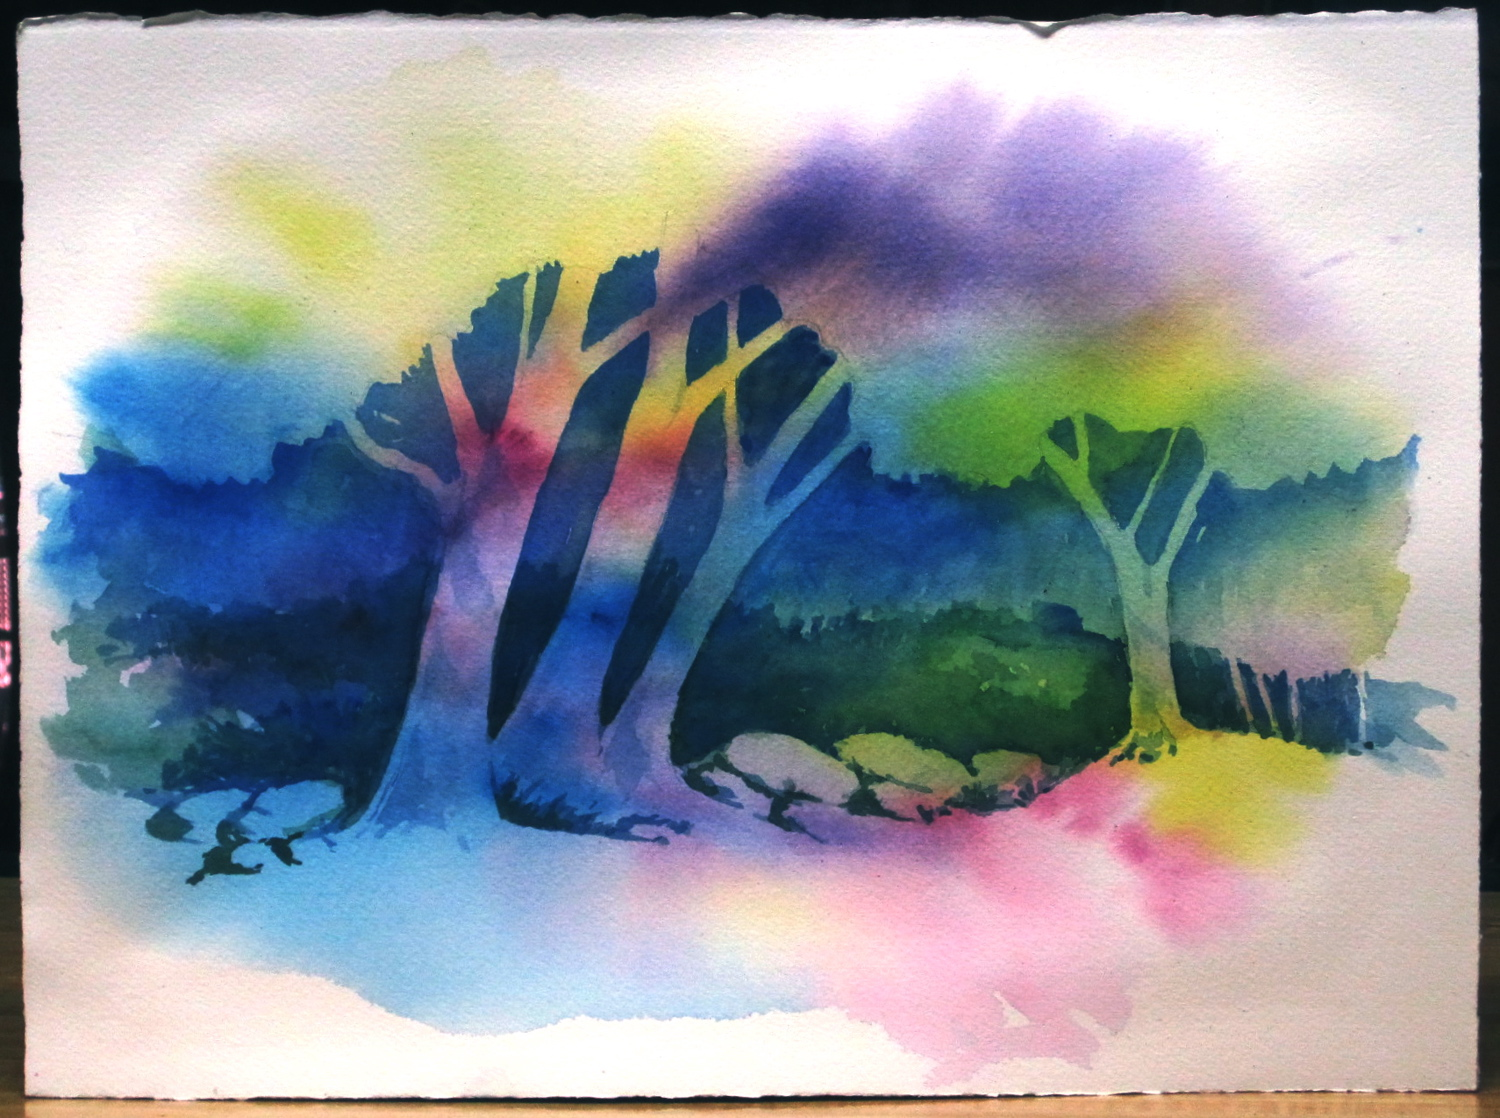 Watercolor painting techniques trees 2018 images for Creative watercolor painting techniques